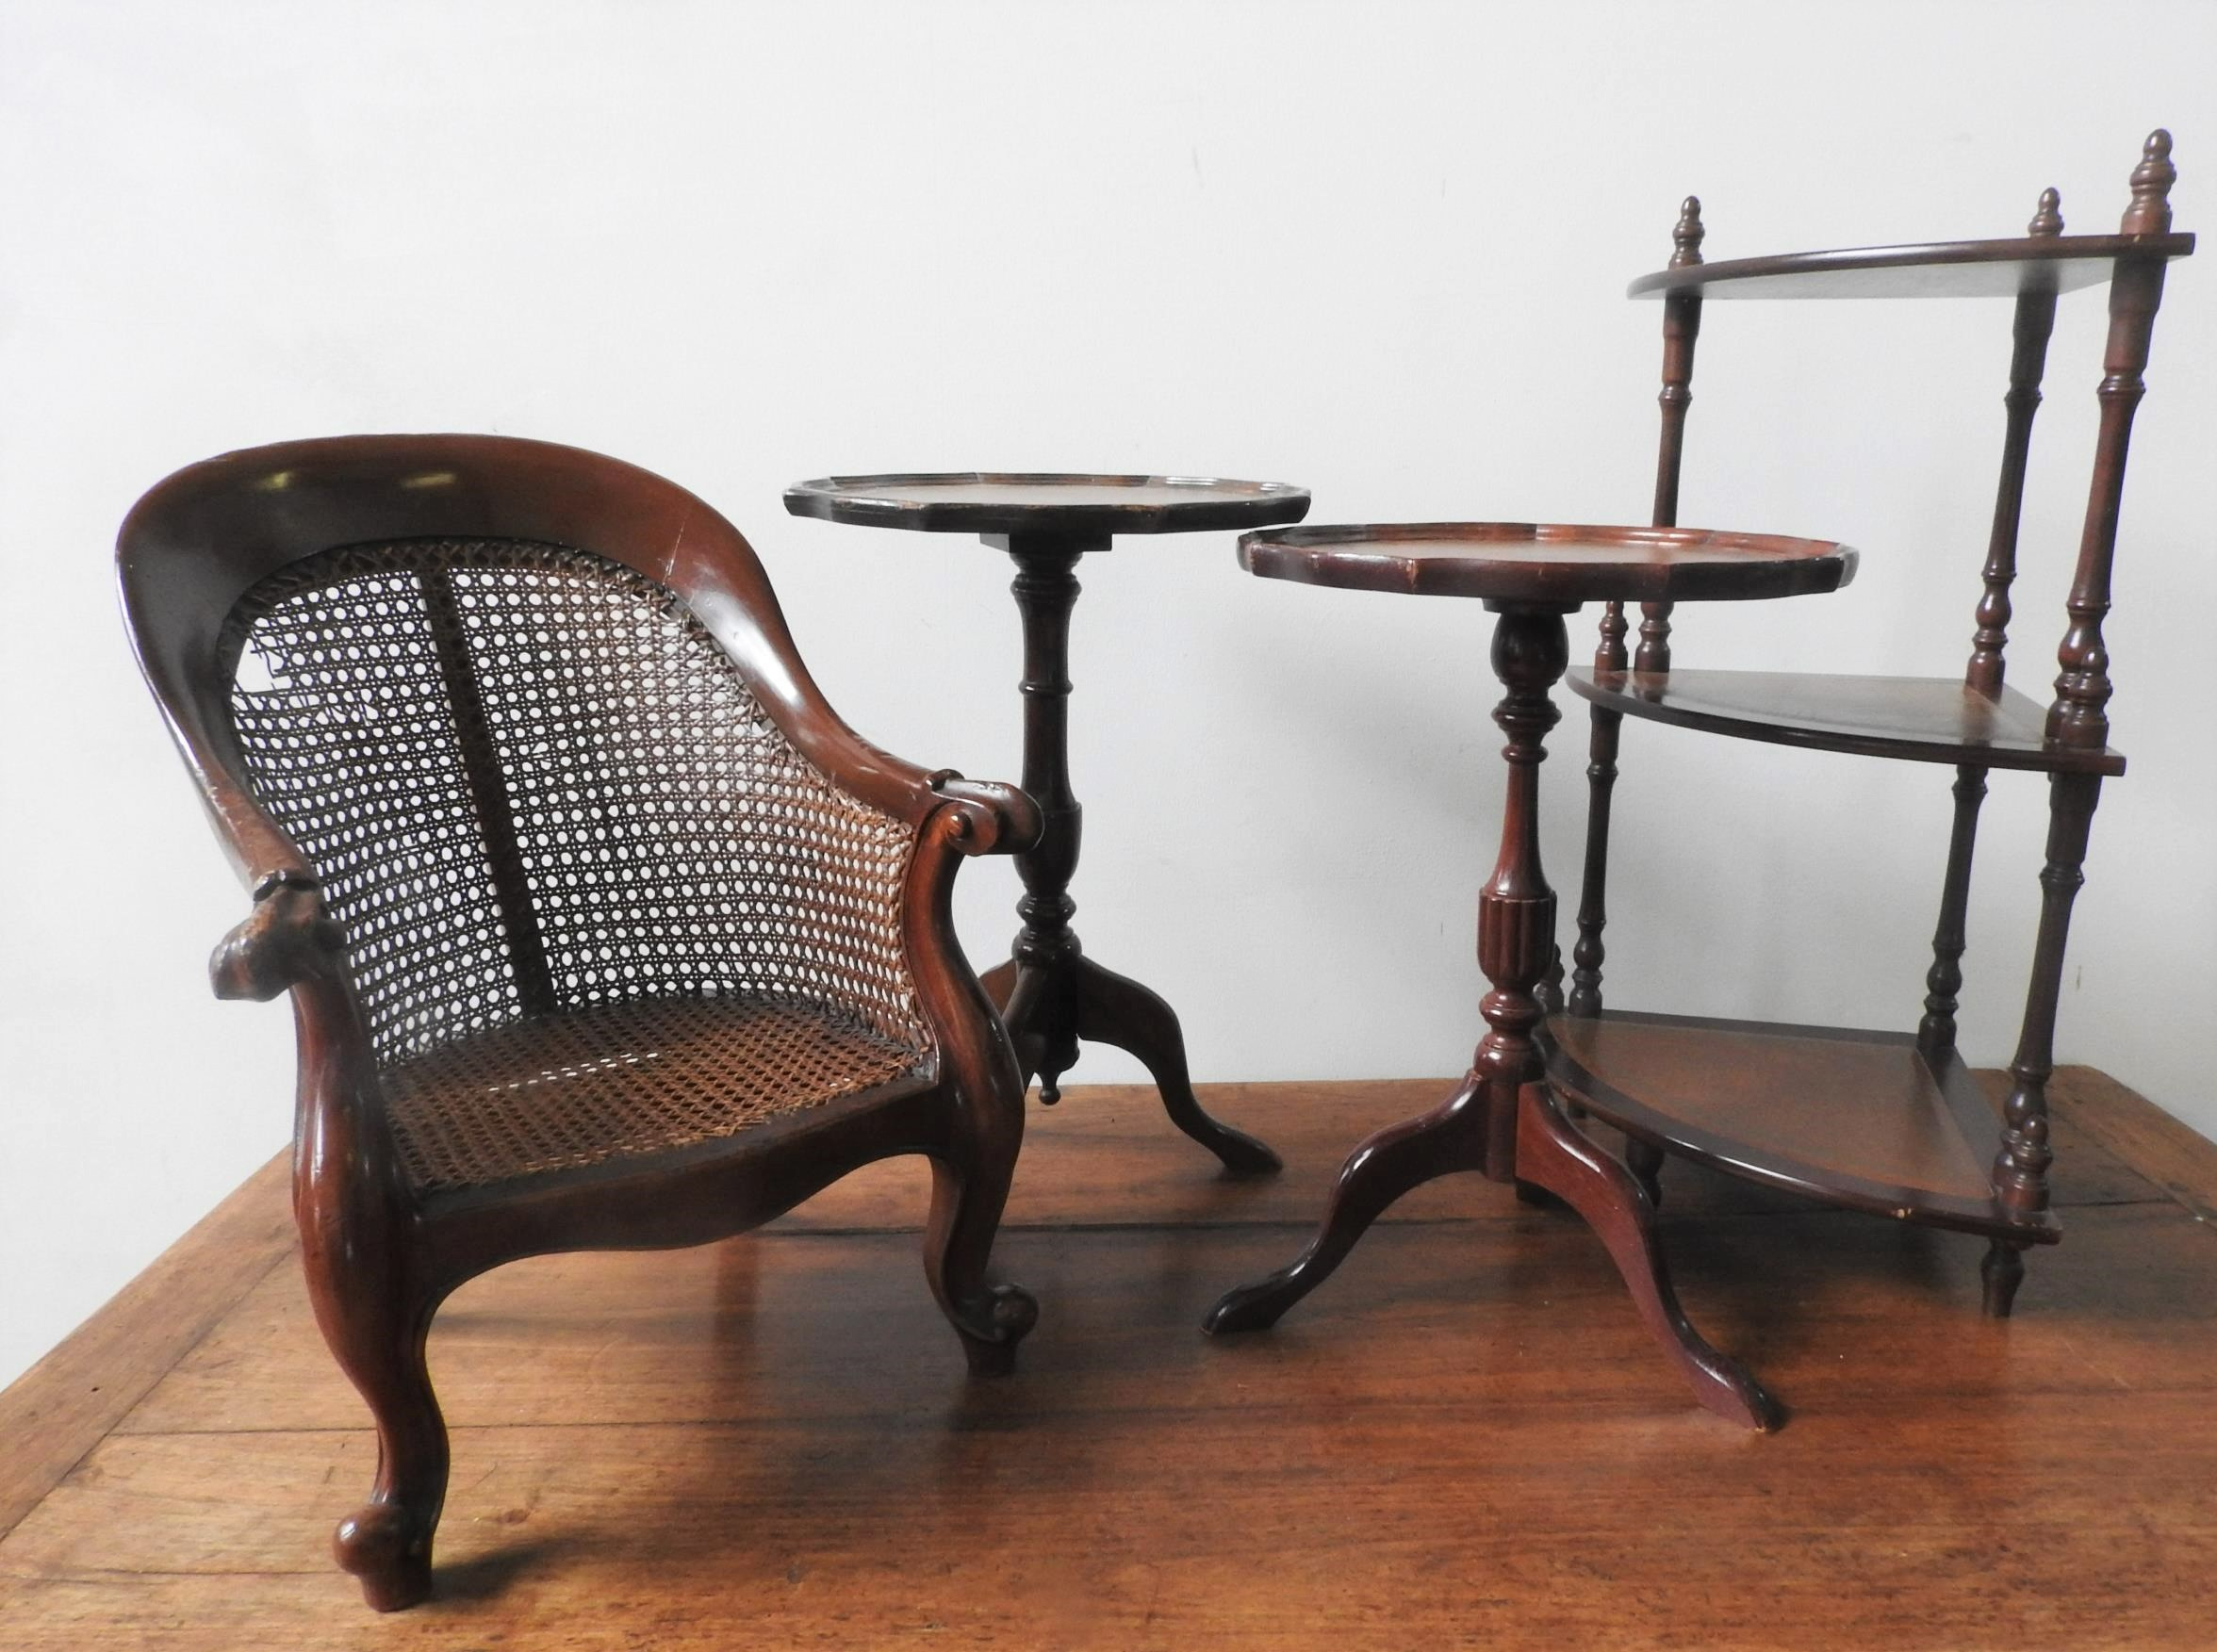 A CHILD'S MAHOGANY FRAMED CANE ARMCHAIR, TWO 20TH CENTURY WINE TABLES AND 3-TIER CORNER WHAT NOT,